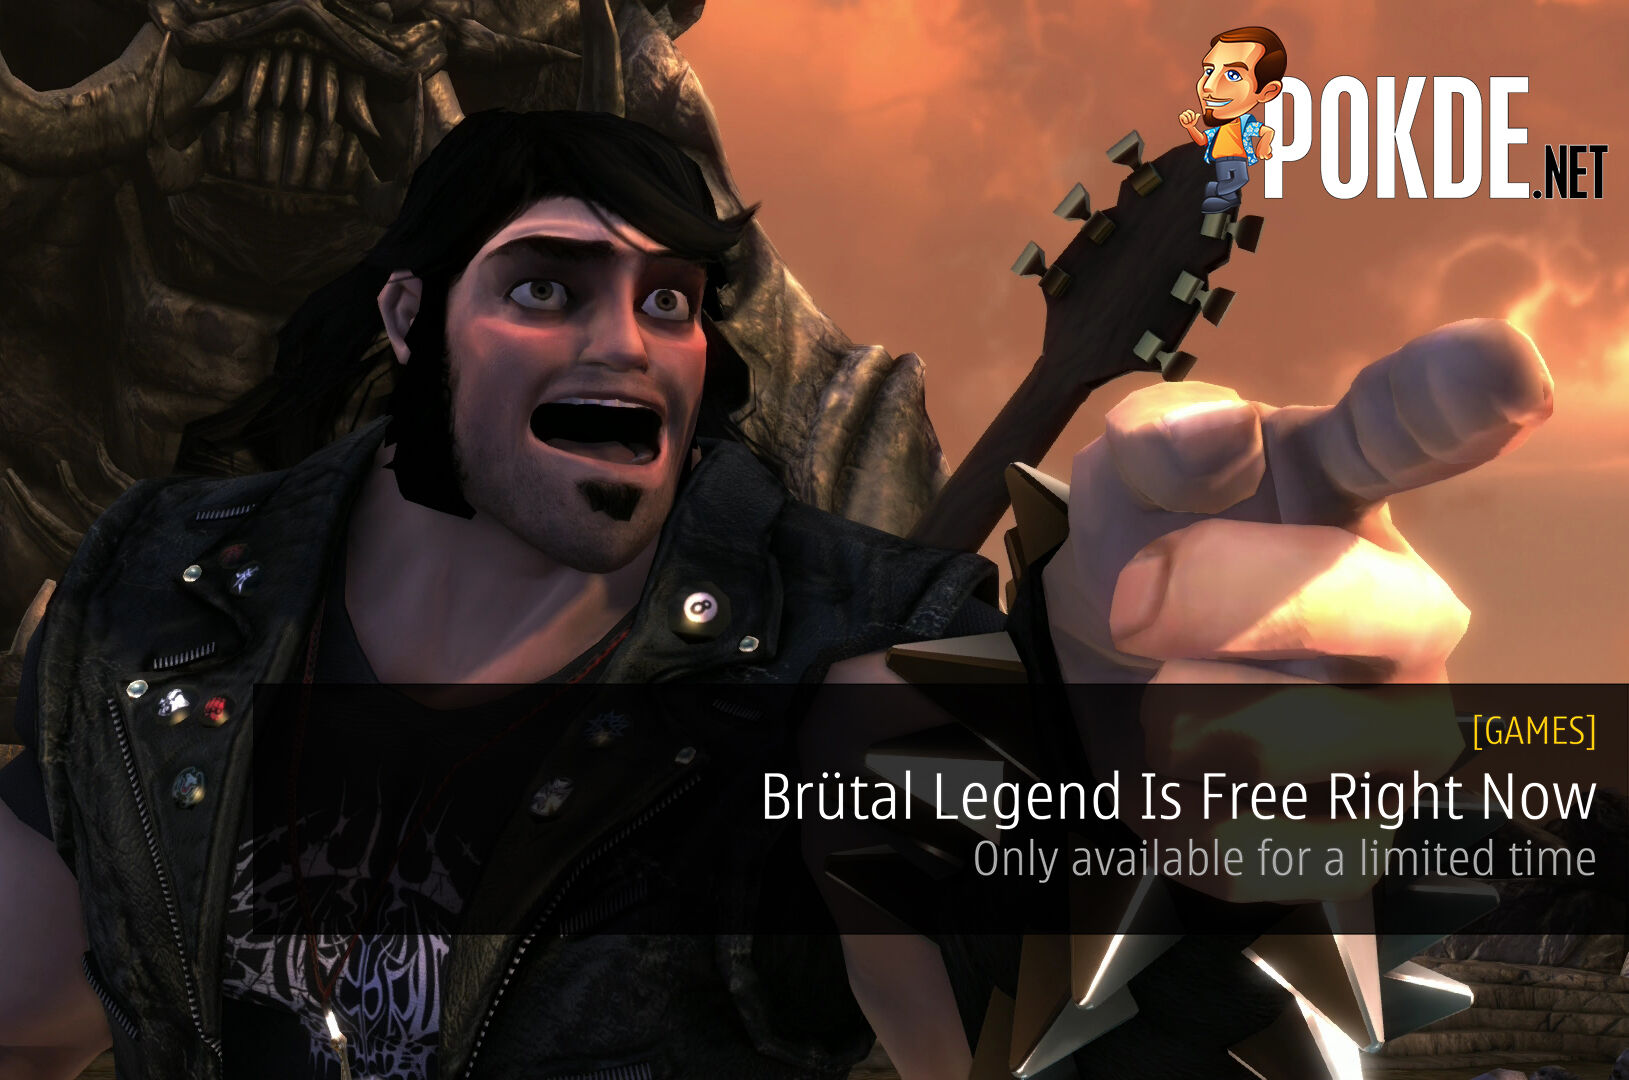 Brütal Legend Is Free Right Now - Only available for a limited time 52